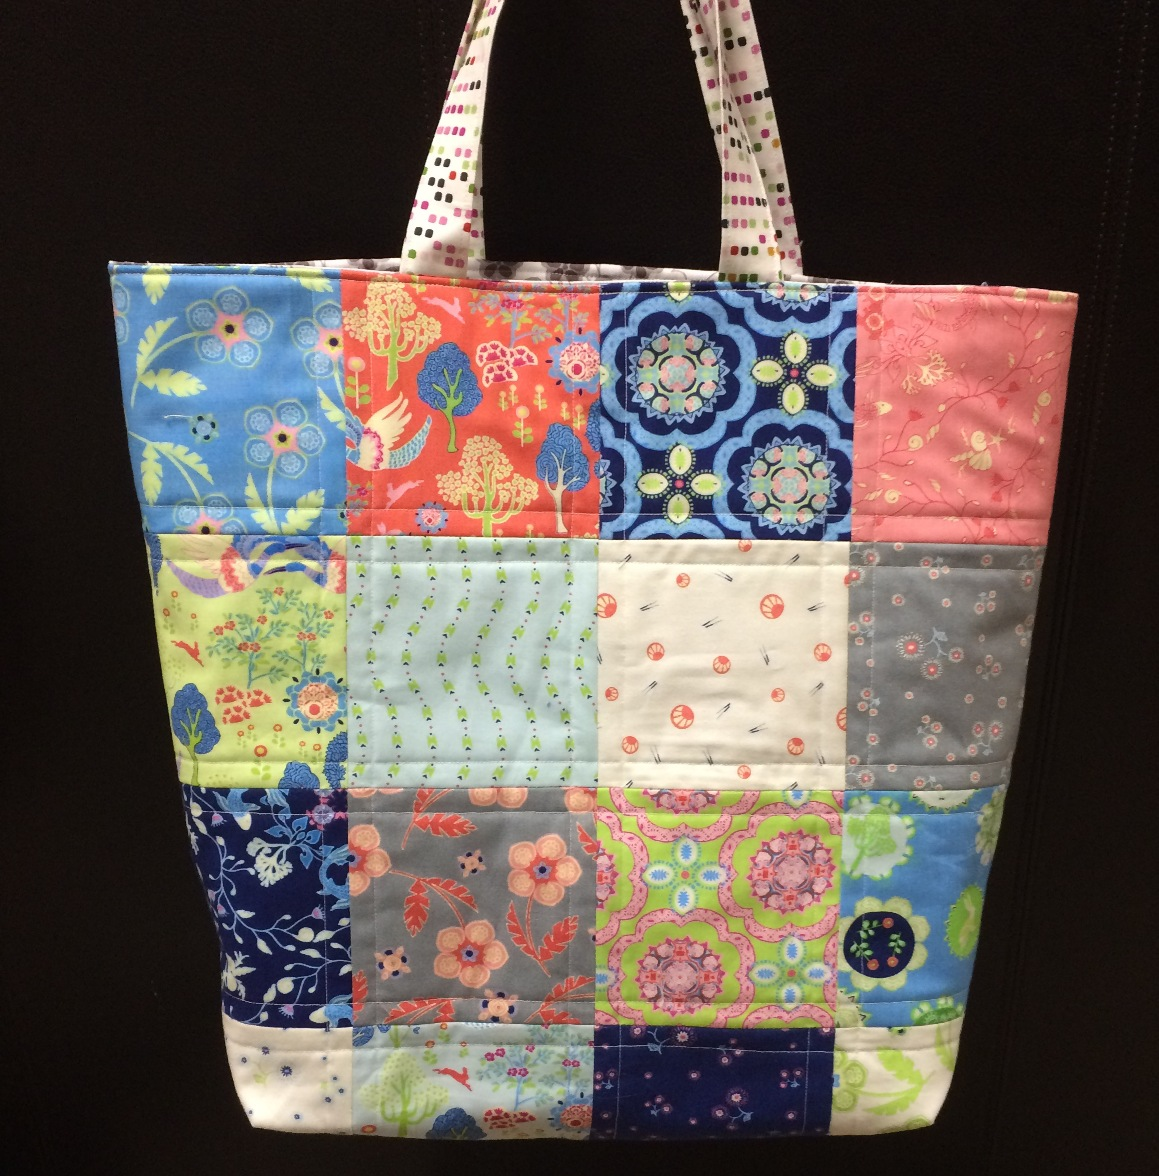 Chubby bag quilting sister vids older